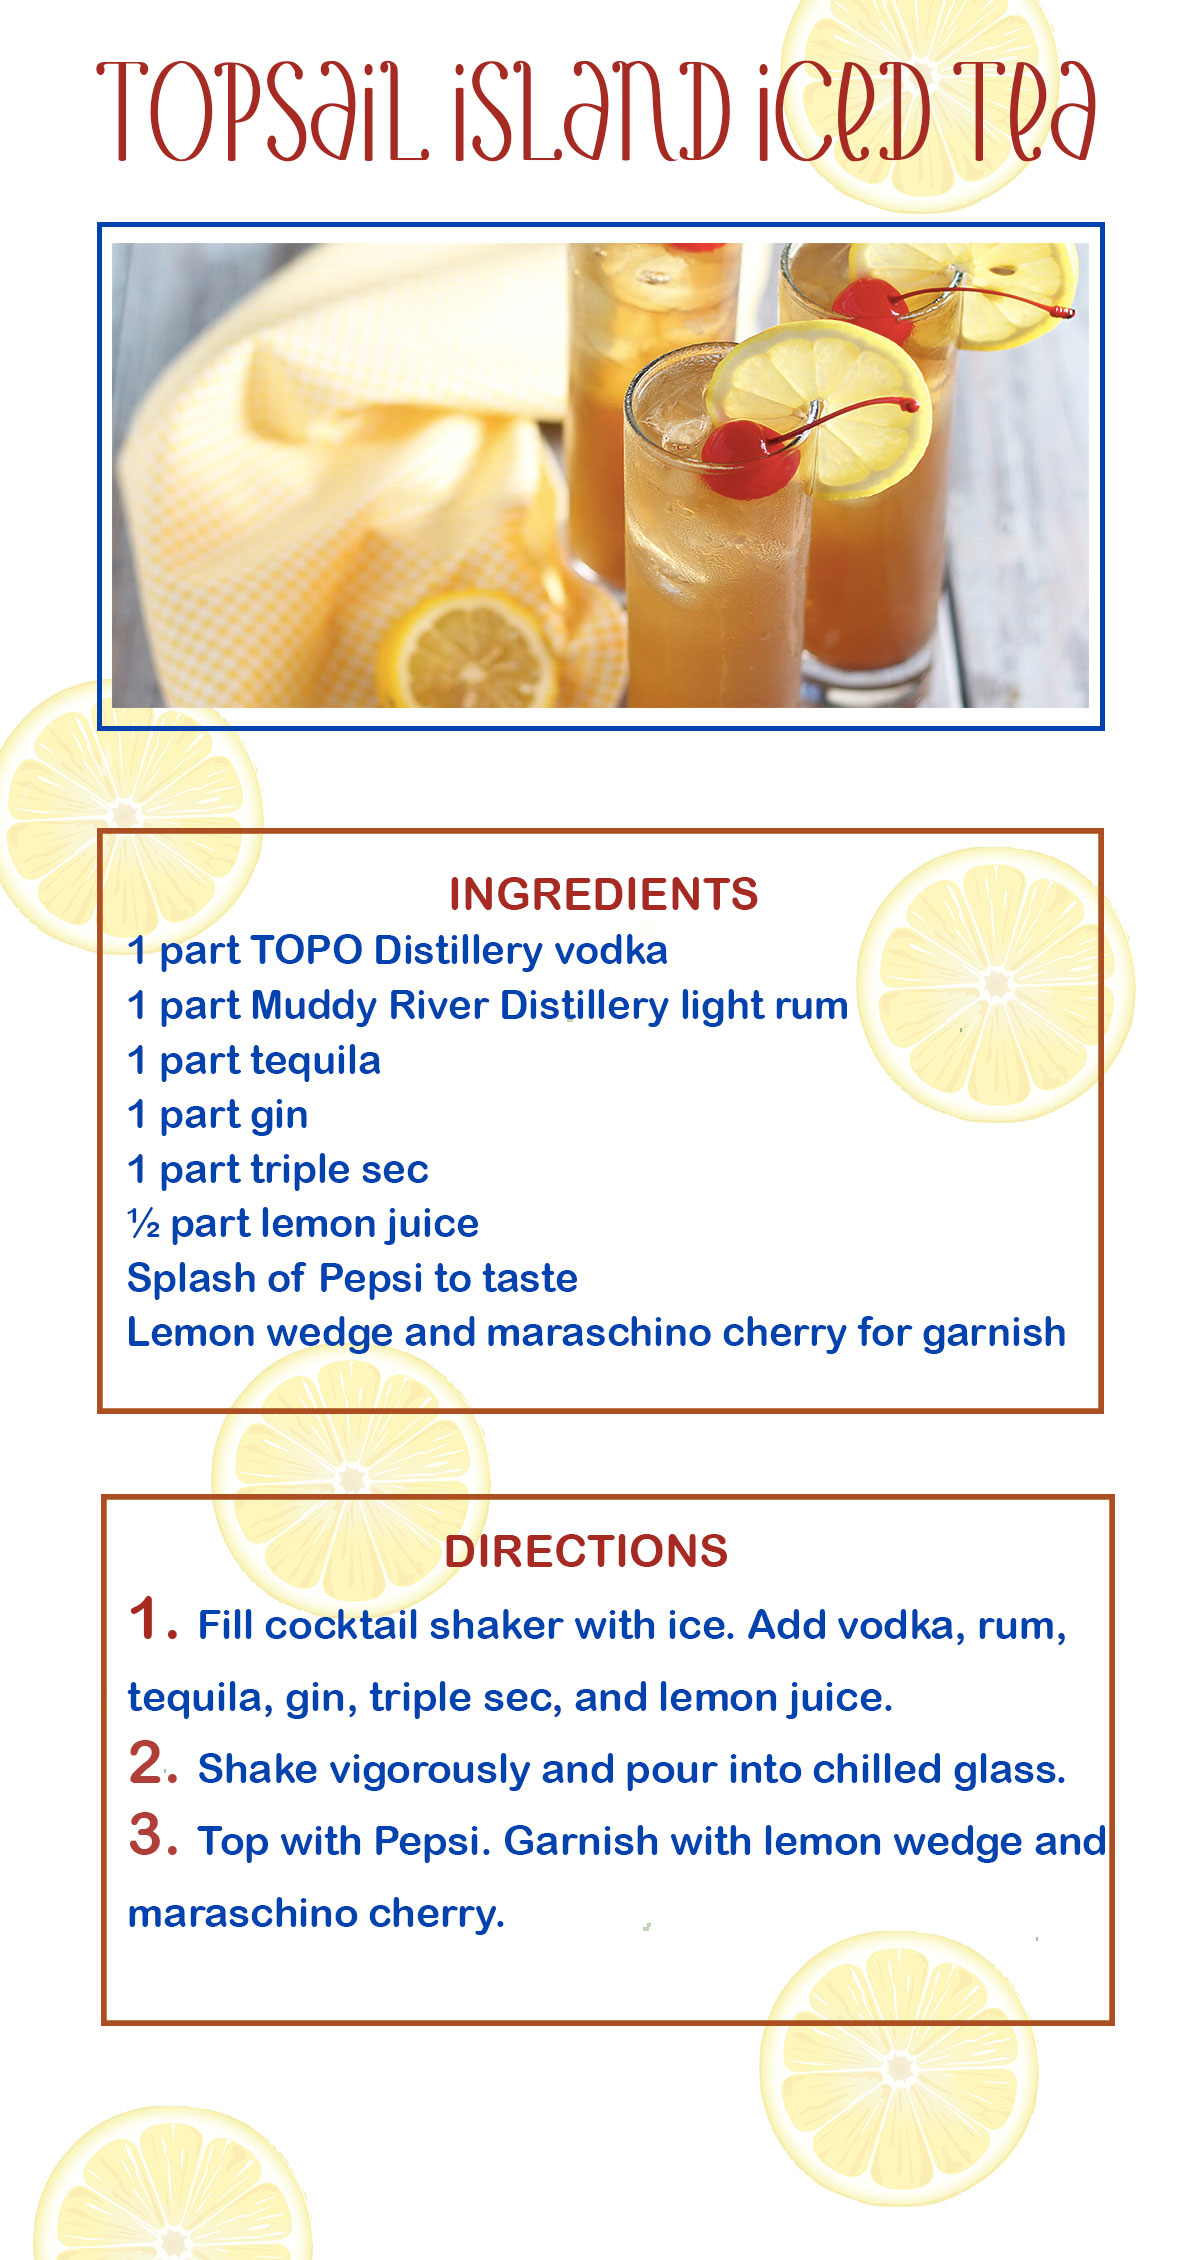 Topsail Island Sweet Tea Recipe